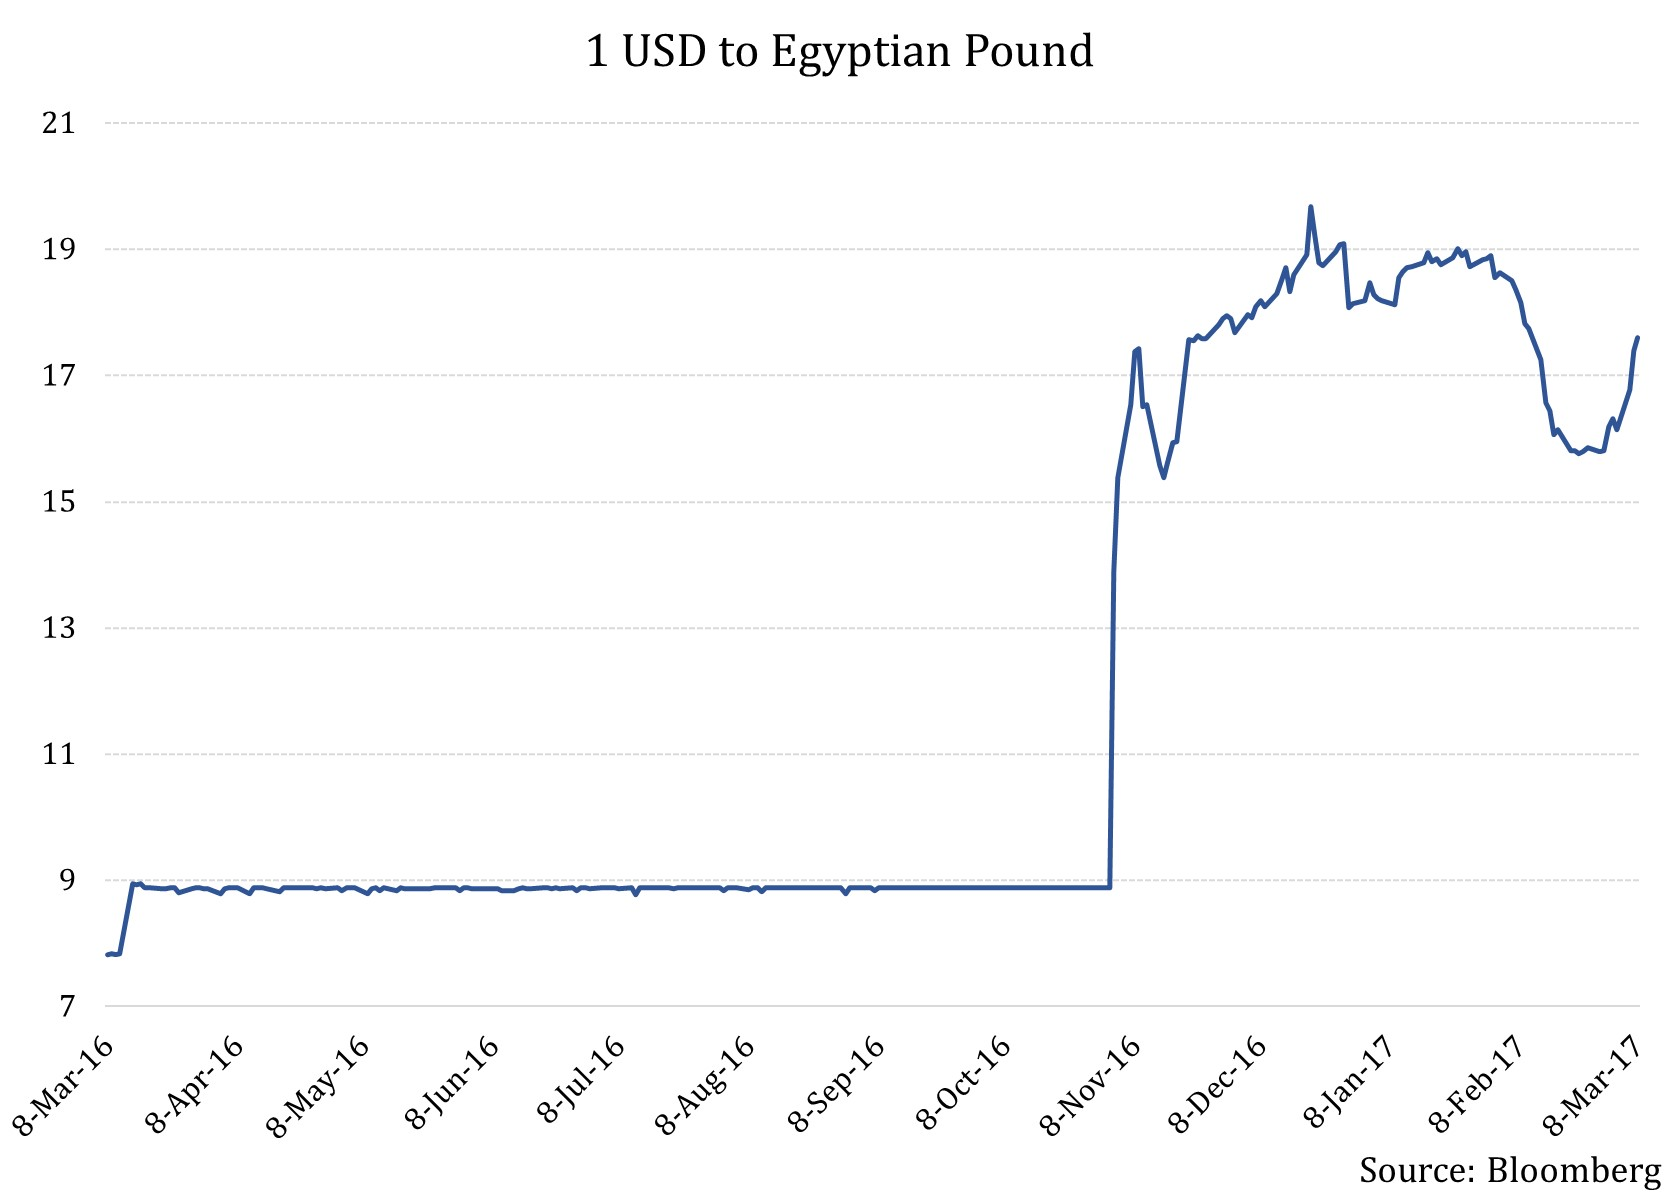 Egyptian forex traders